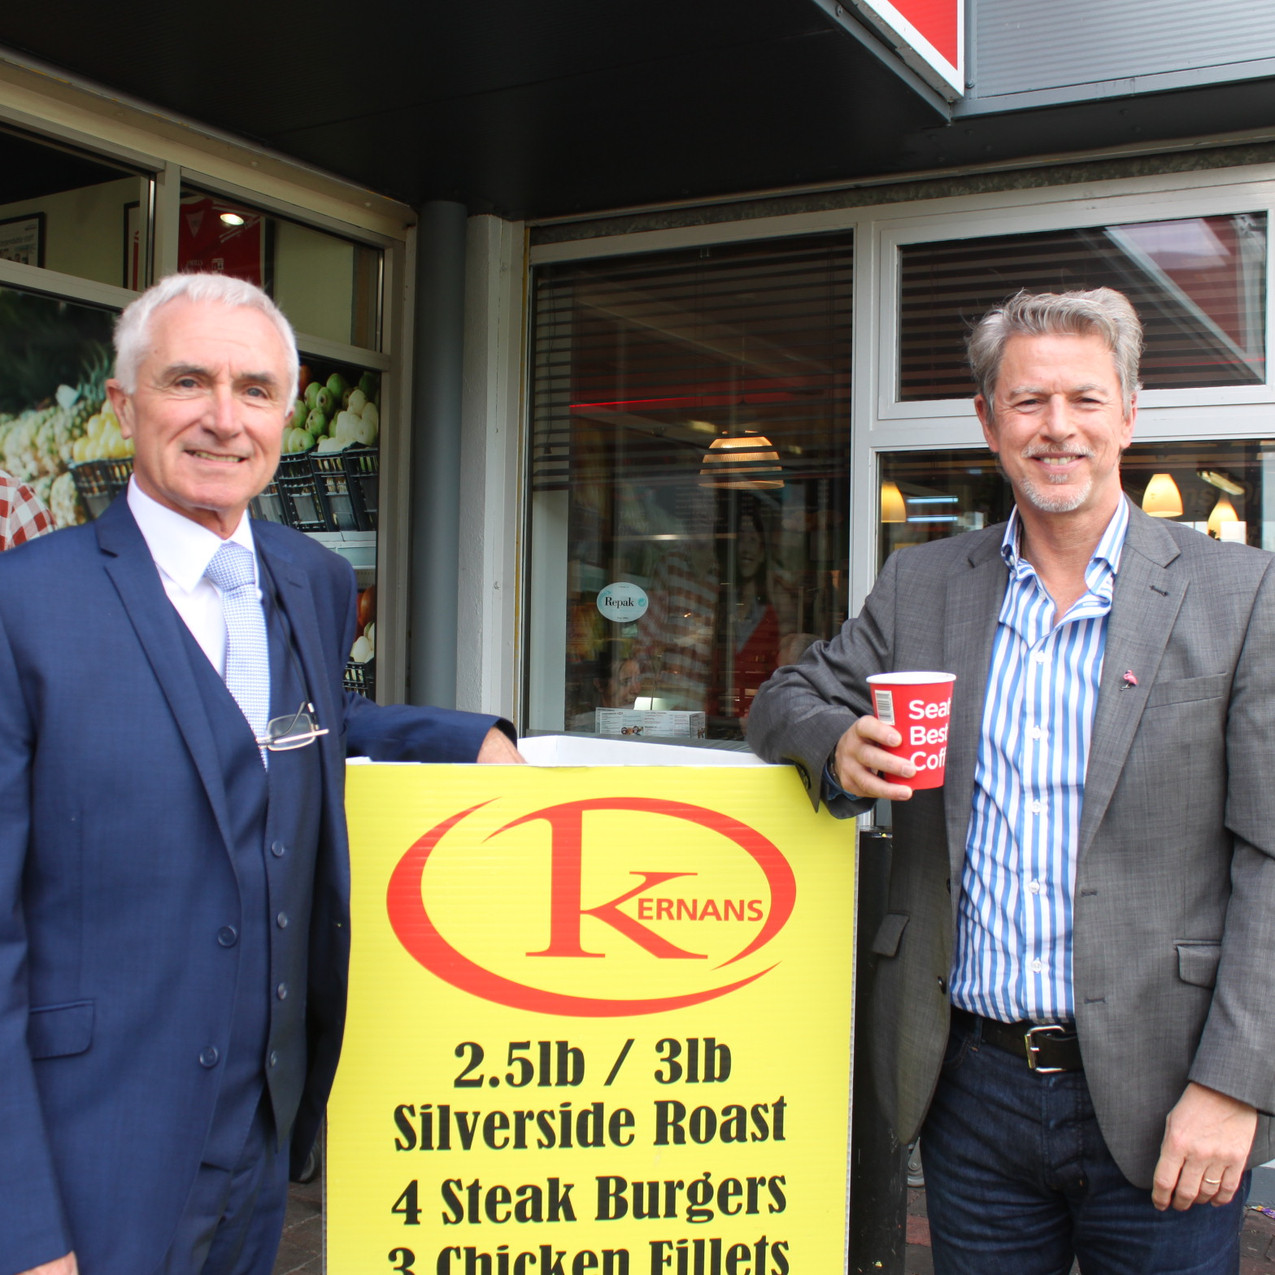 Kernans Newtown. Dr James McDaid and Anthony Kernan outside Kernans Newtowncunningham to Lauch the Coffee Morning